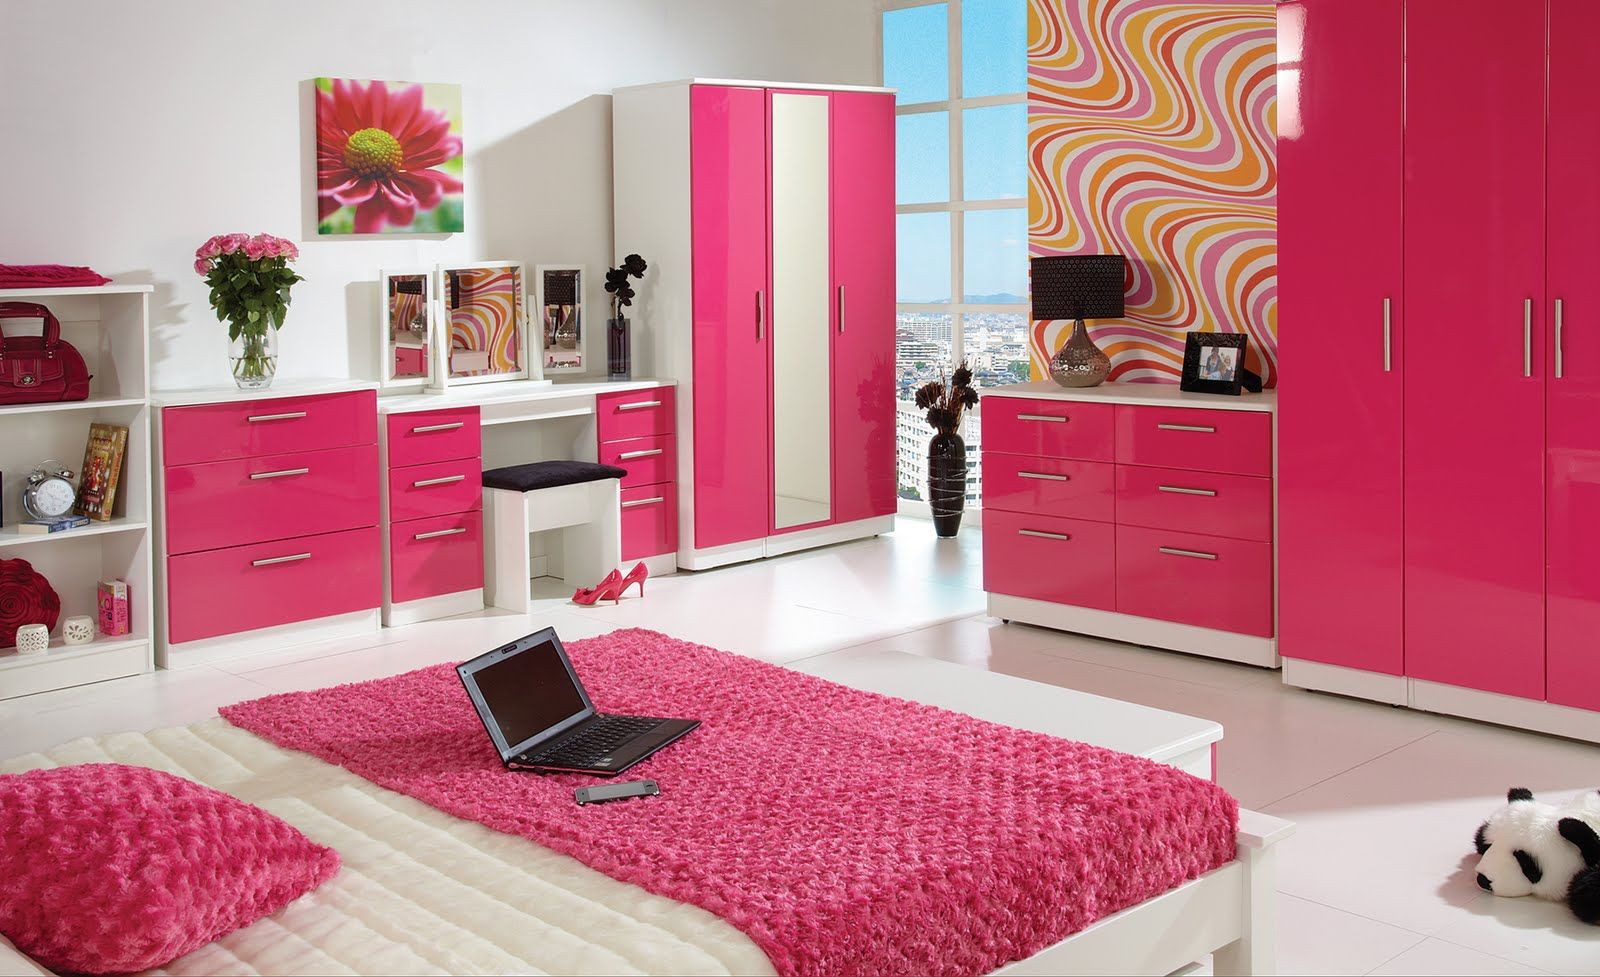 Design Ideas For Modern White Girls Bedroom With Pink Color Scheme Interior  Furniture Decorating And Beautiful